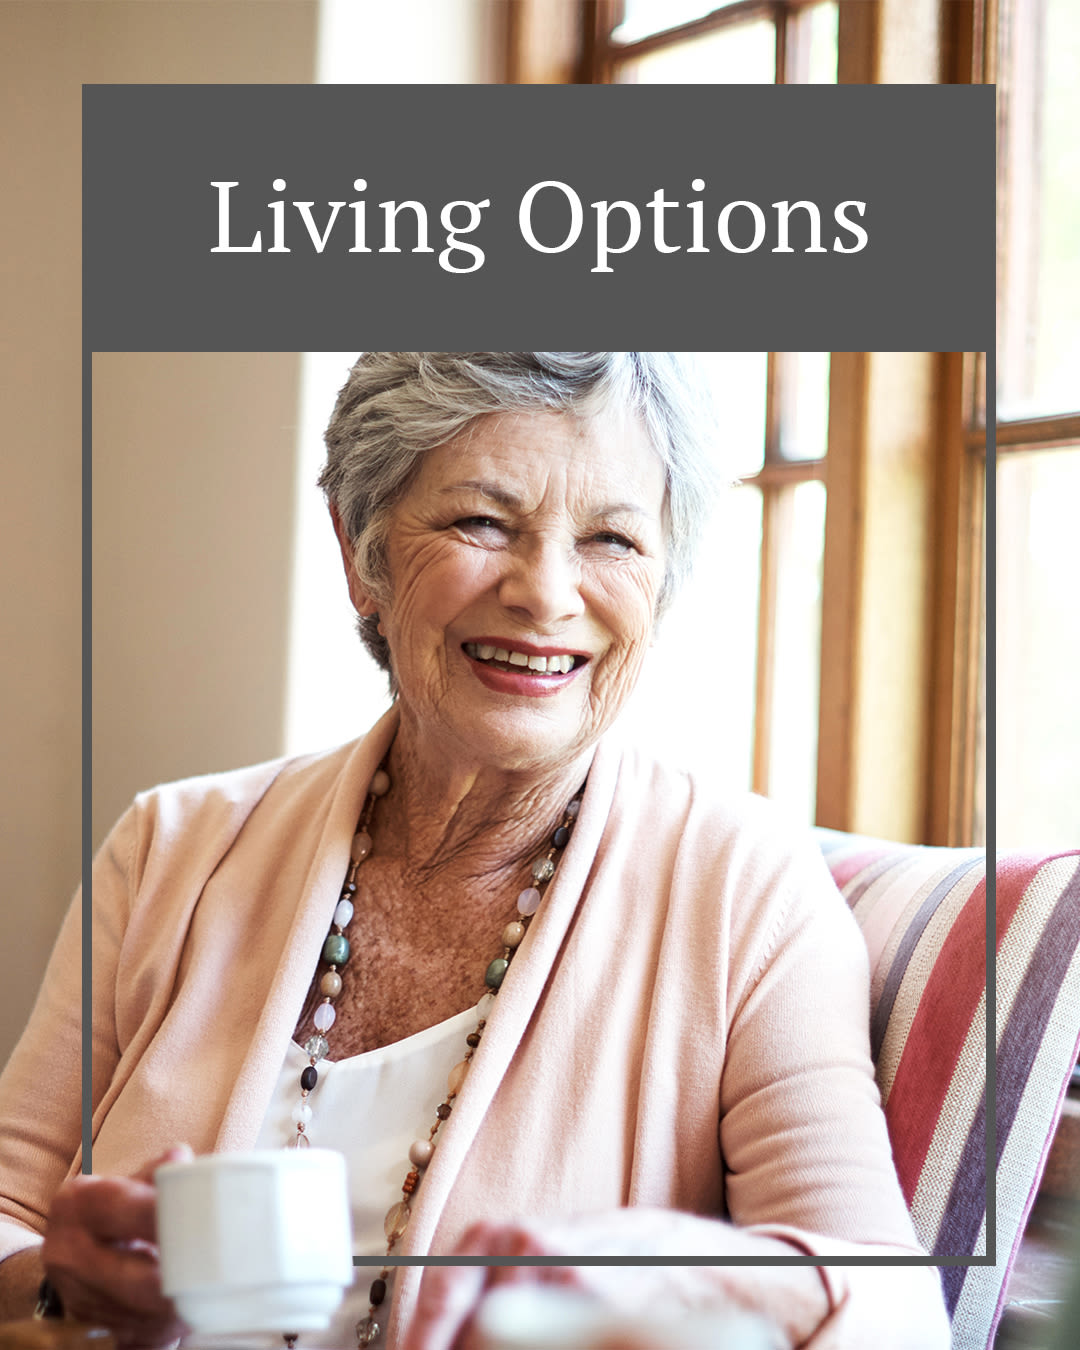 Living options at Autumn Grove Cottage at Pearland in Manvel, Texas